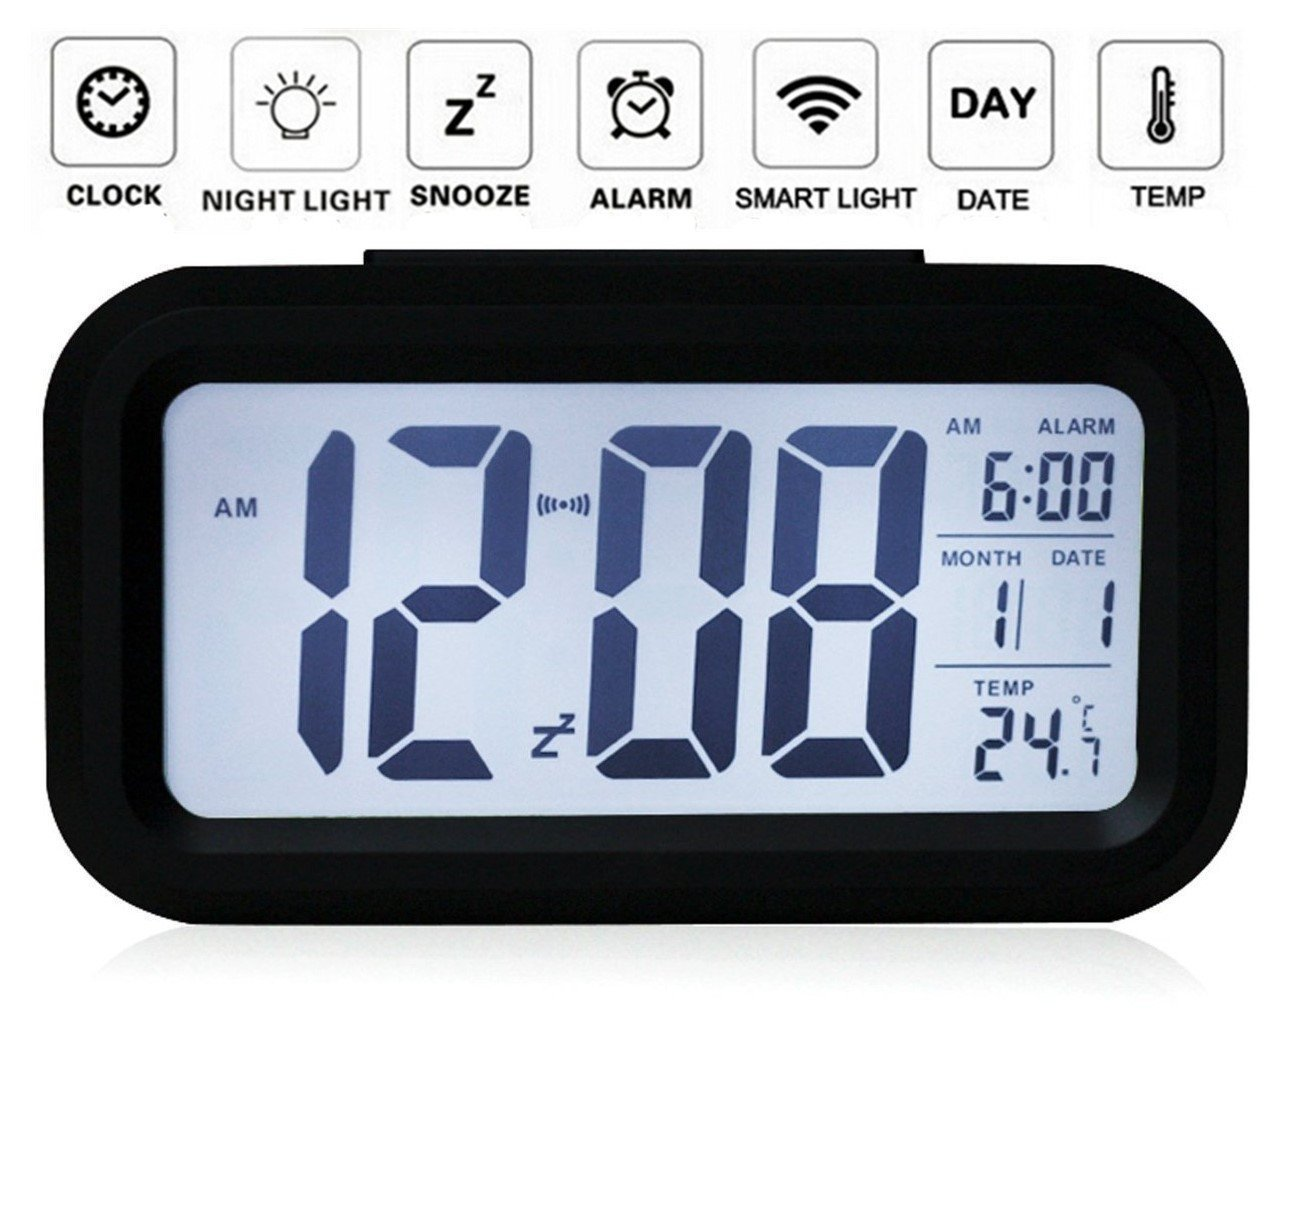 Digital Alarm Clock, Arespark Smart Simple And Silent Bedroom Alarm Clock  With Date And Temperature Display  Snooze And Large Display  Smart Night ...